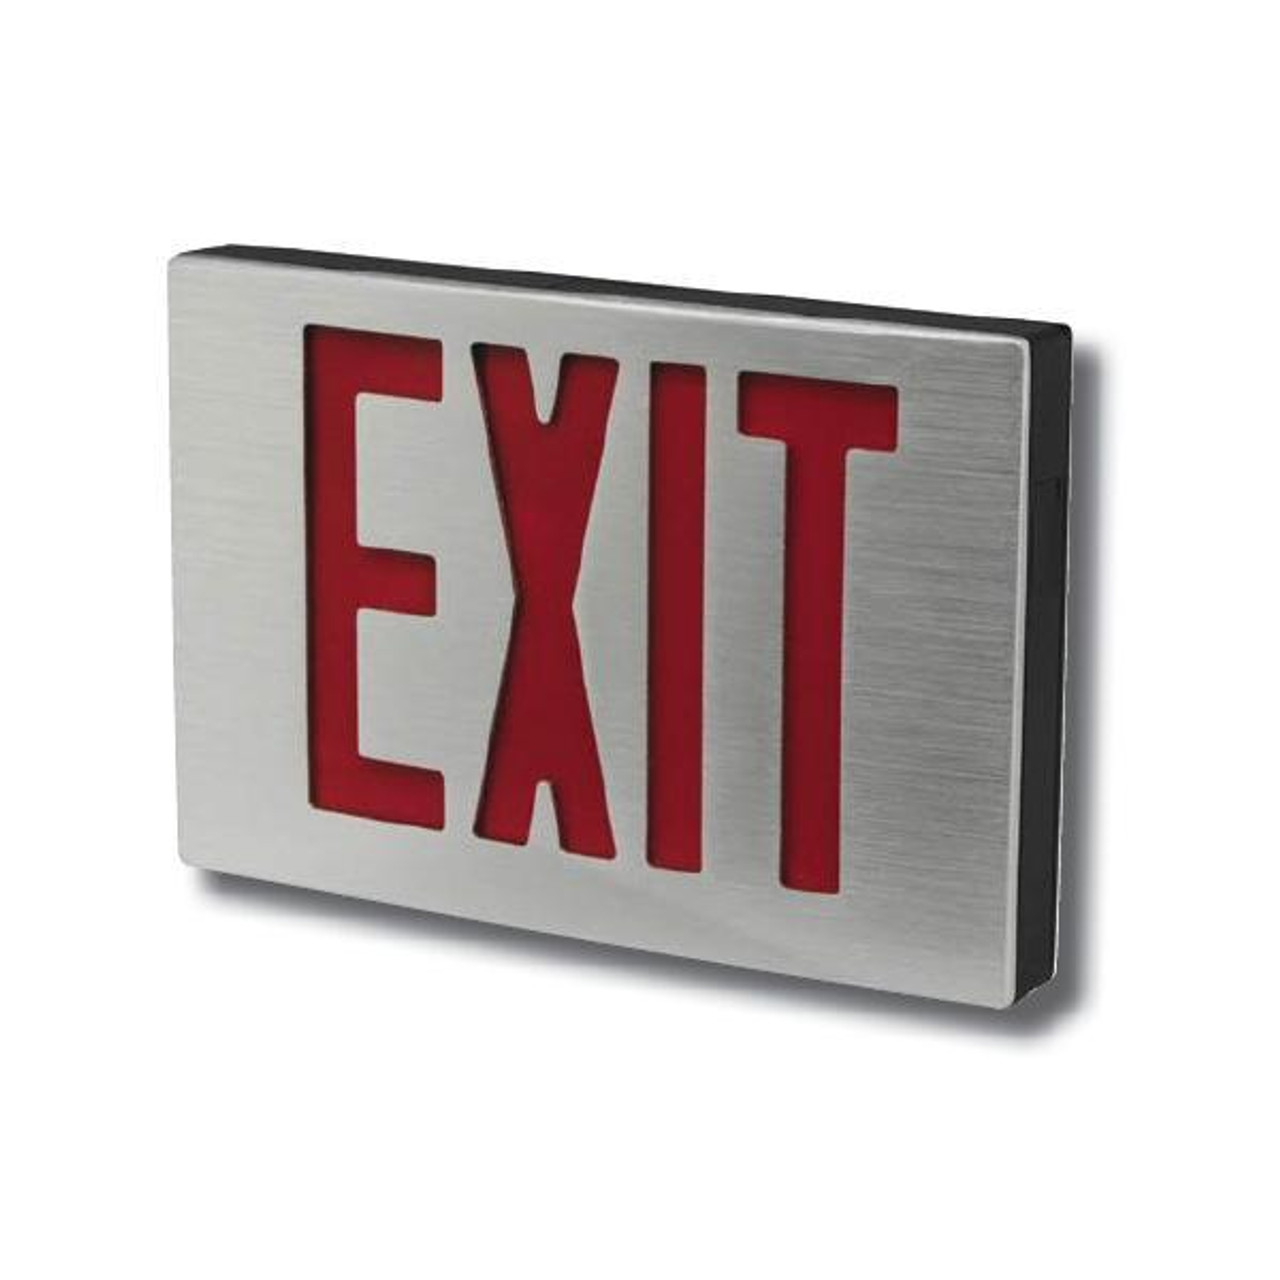 New York City Approved Cast Aluminum LED Emergency Exit